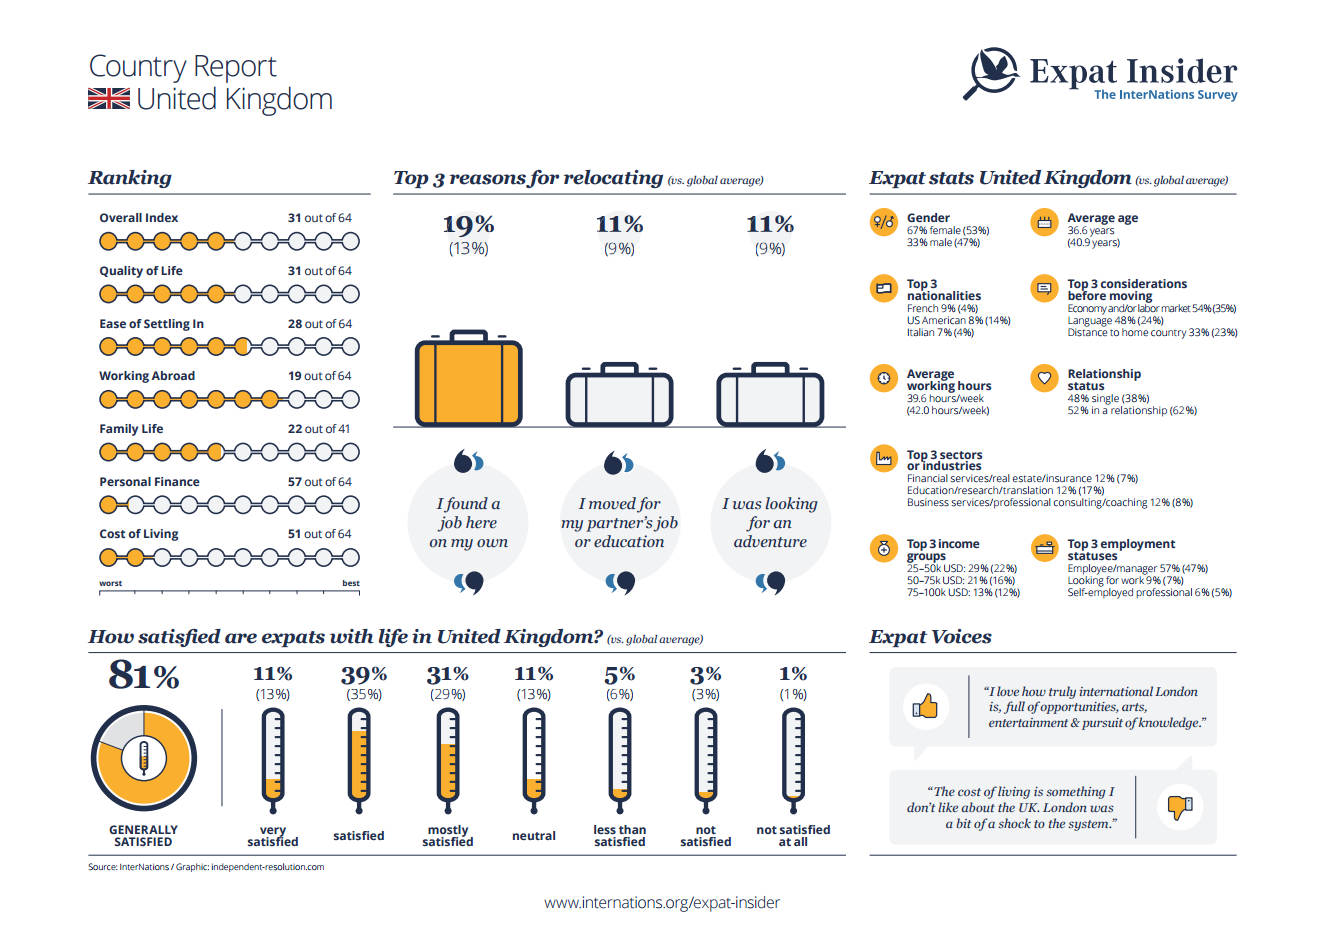 Expat statistics for the UK - infographic